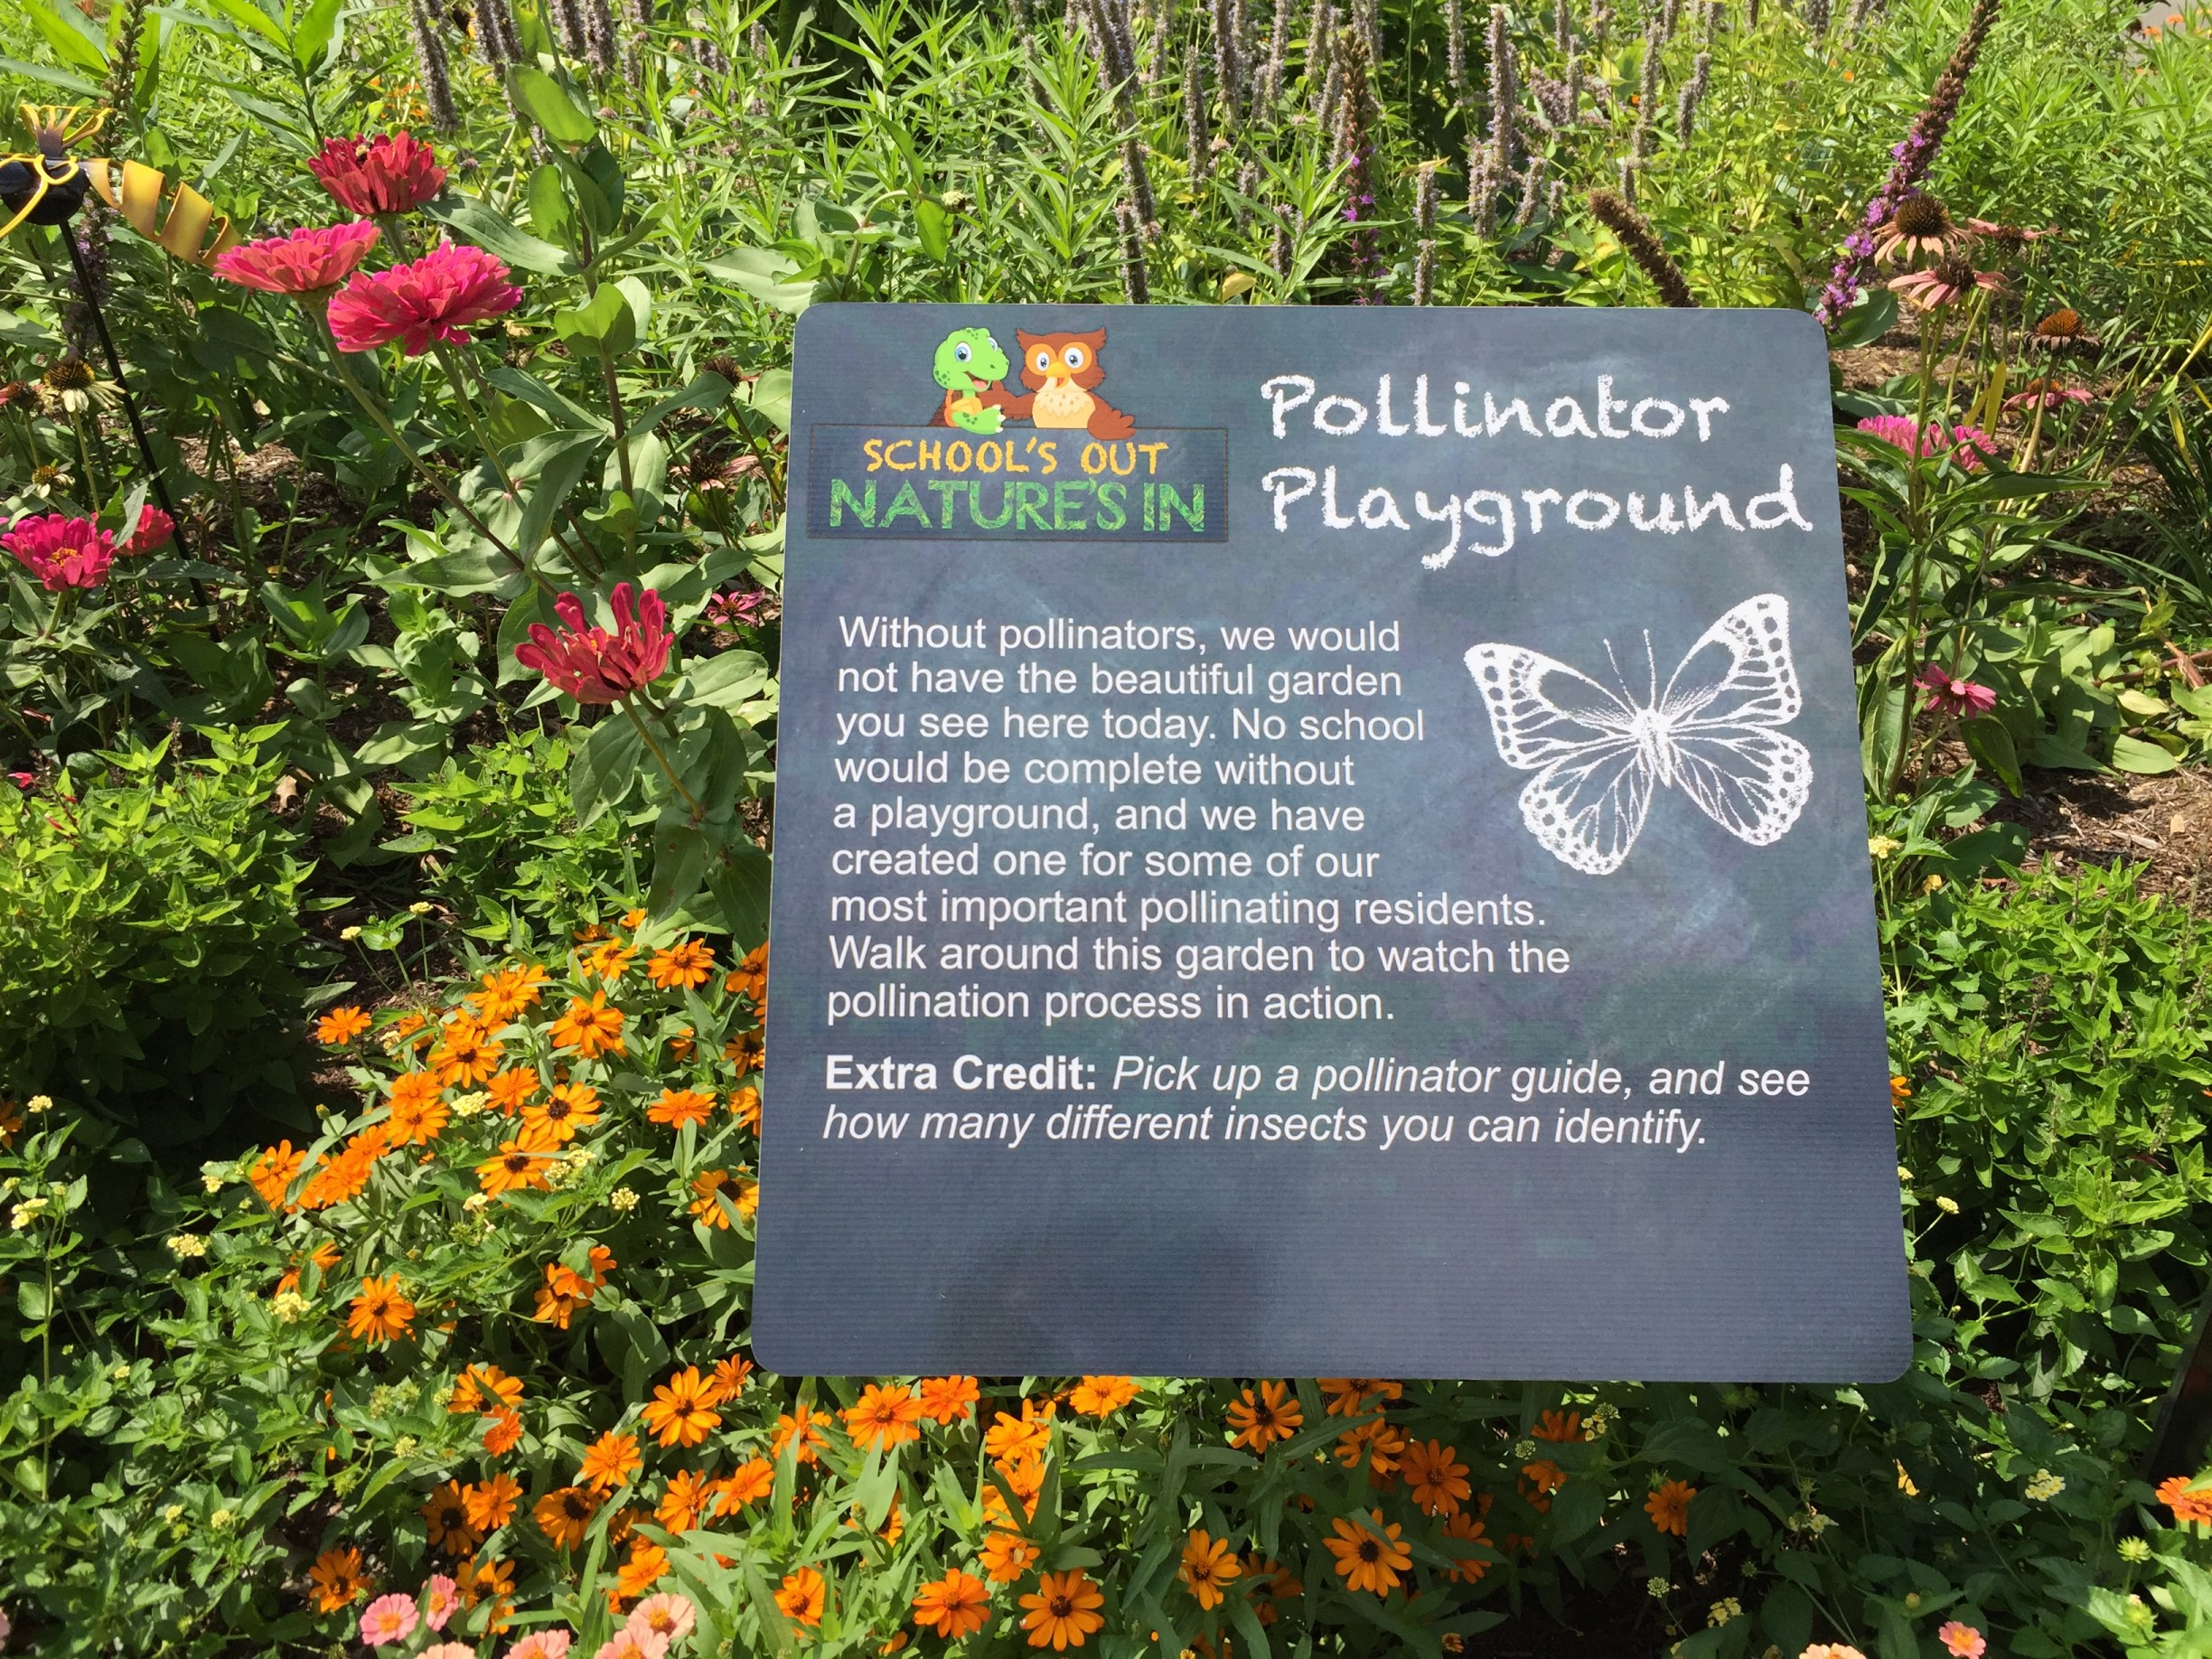 Educational signage in the WOW Garden. Photo © 2018 Elaine Mills.